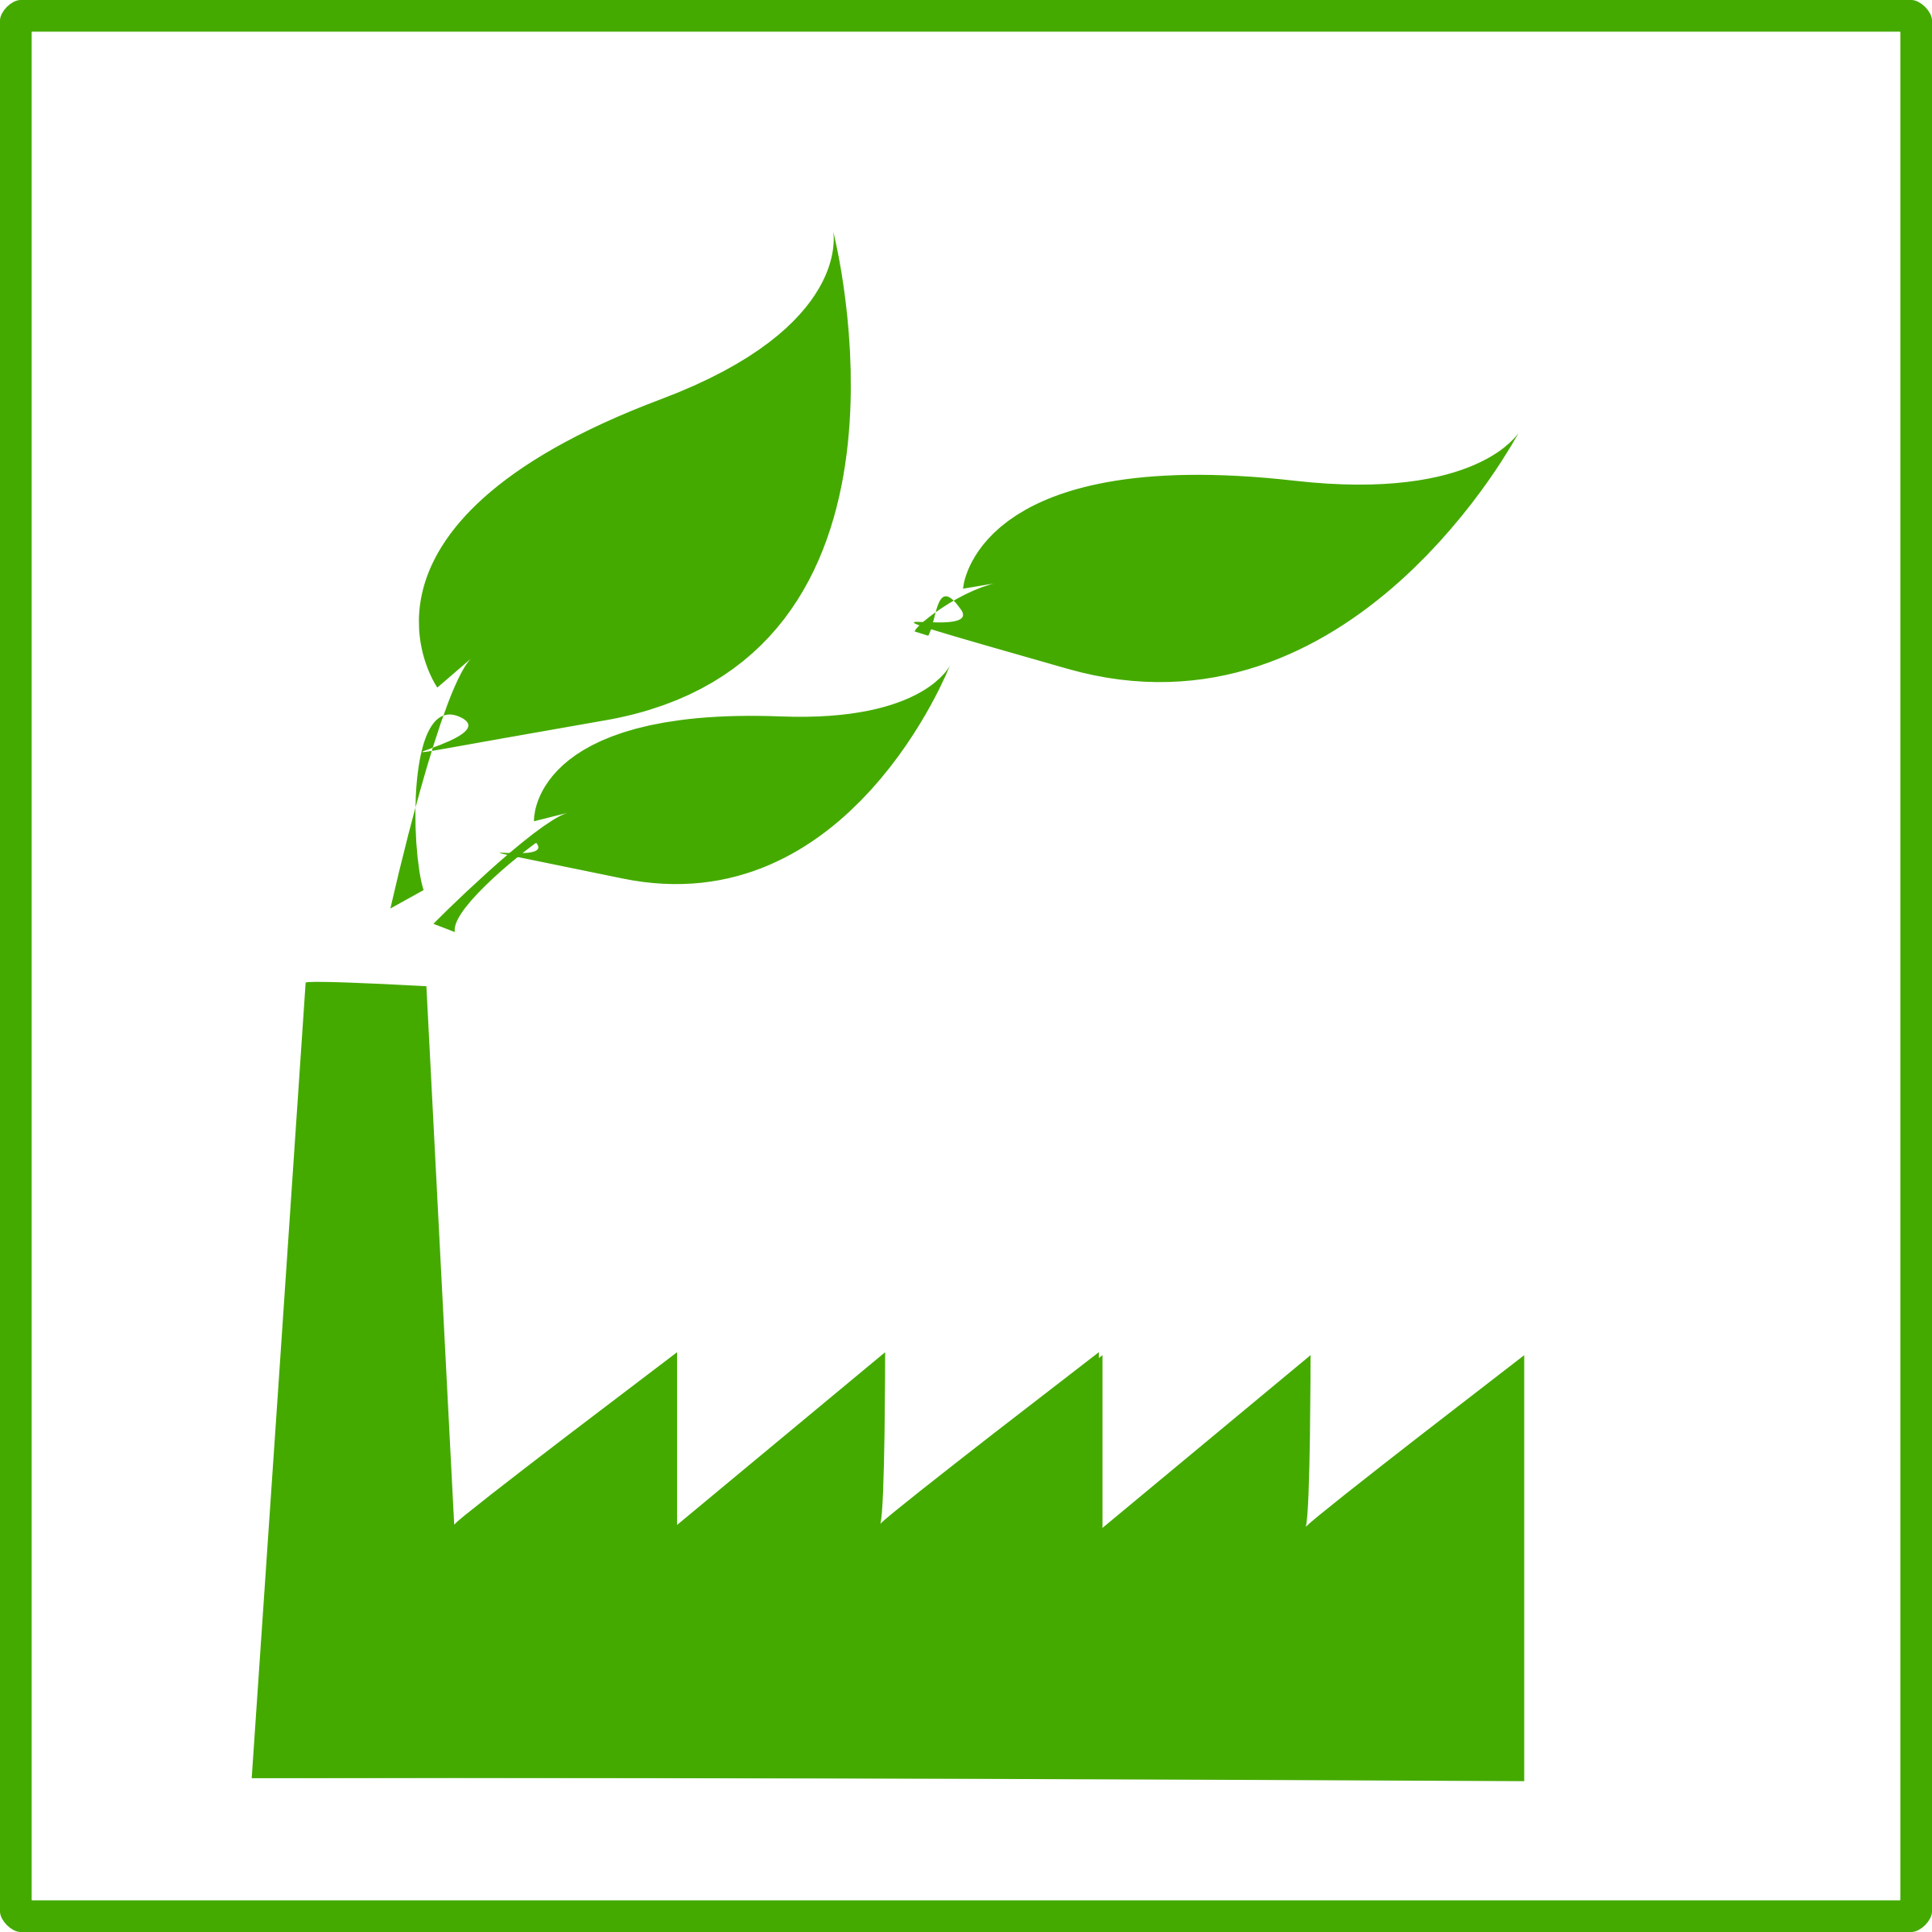 eco green factory icon